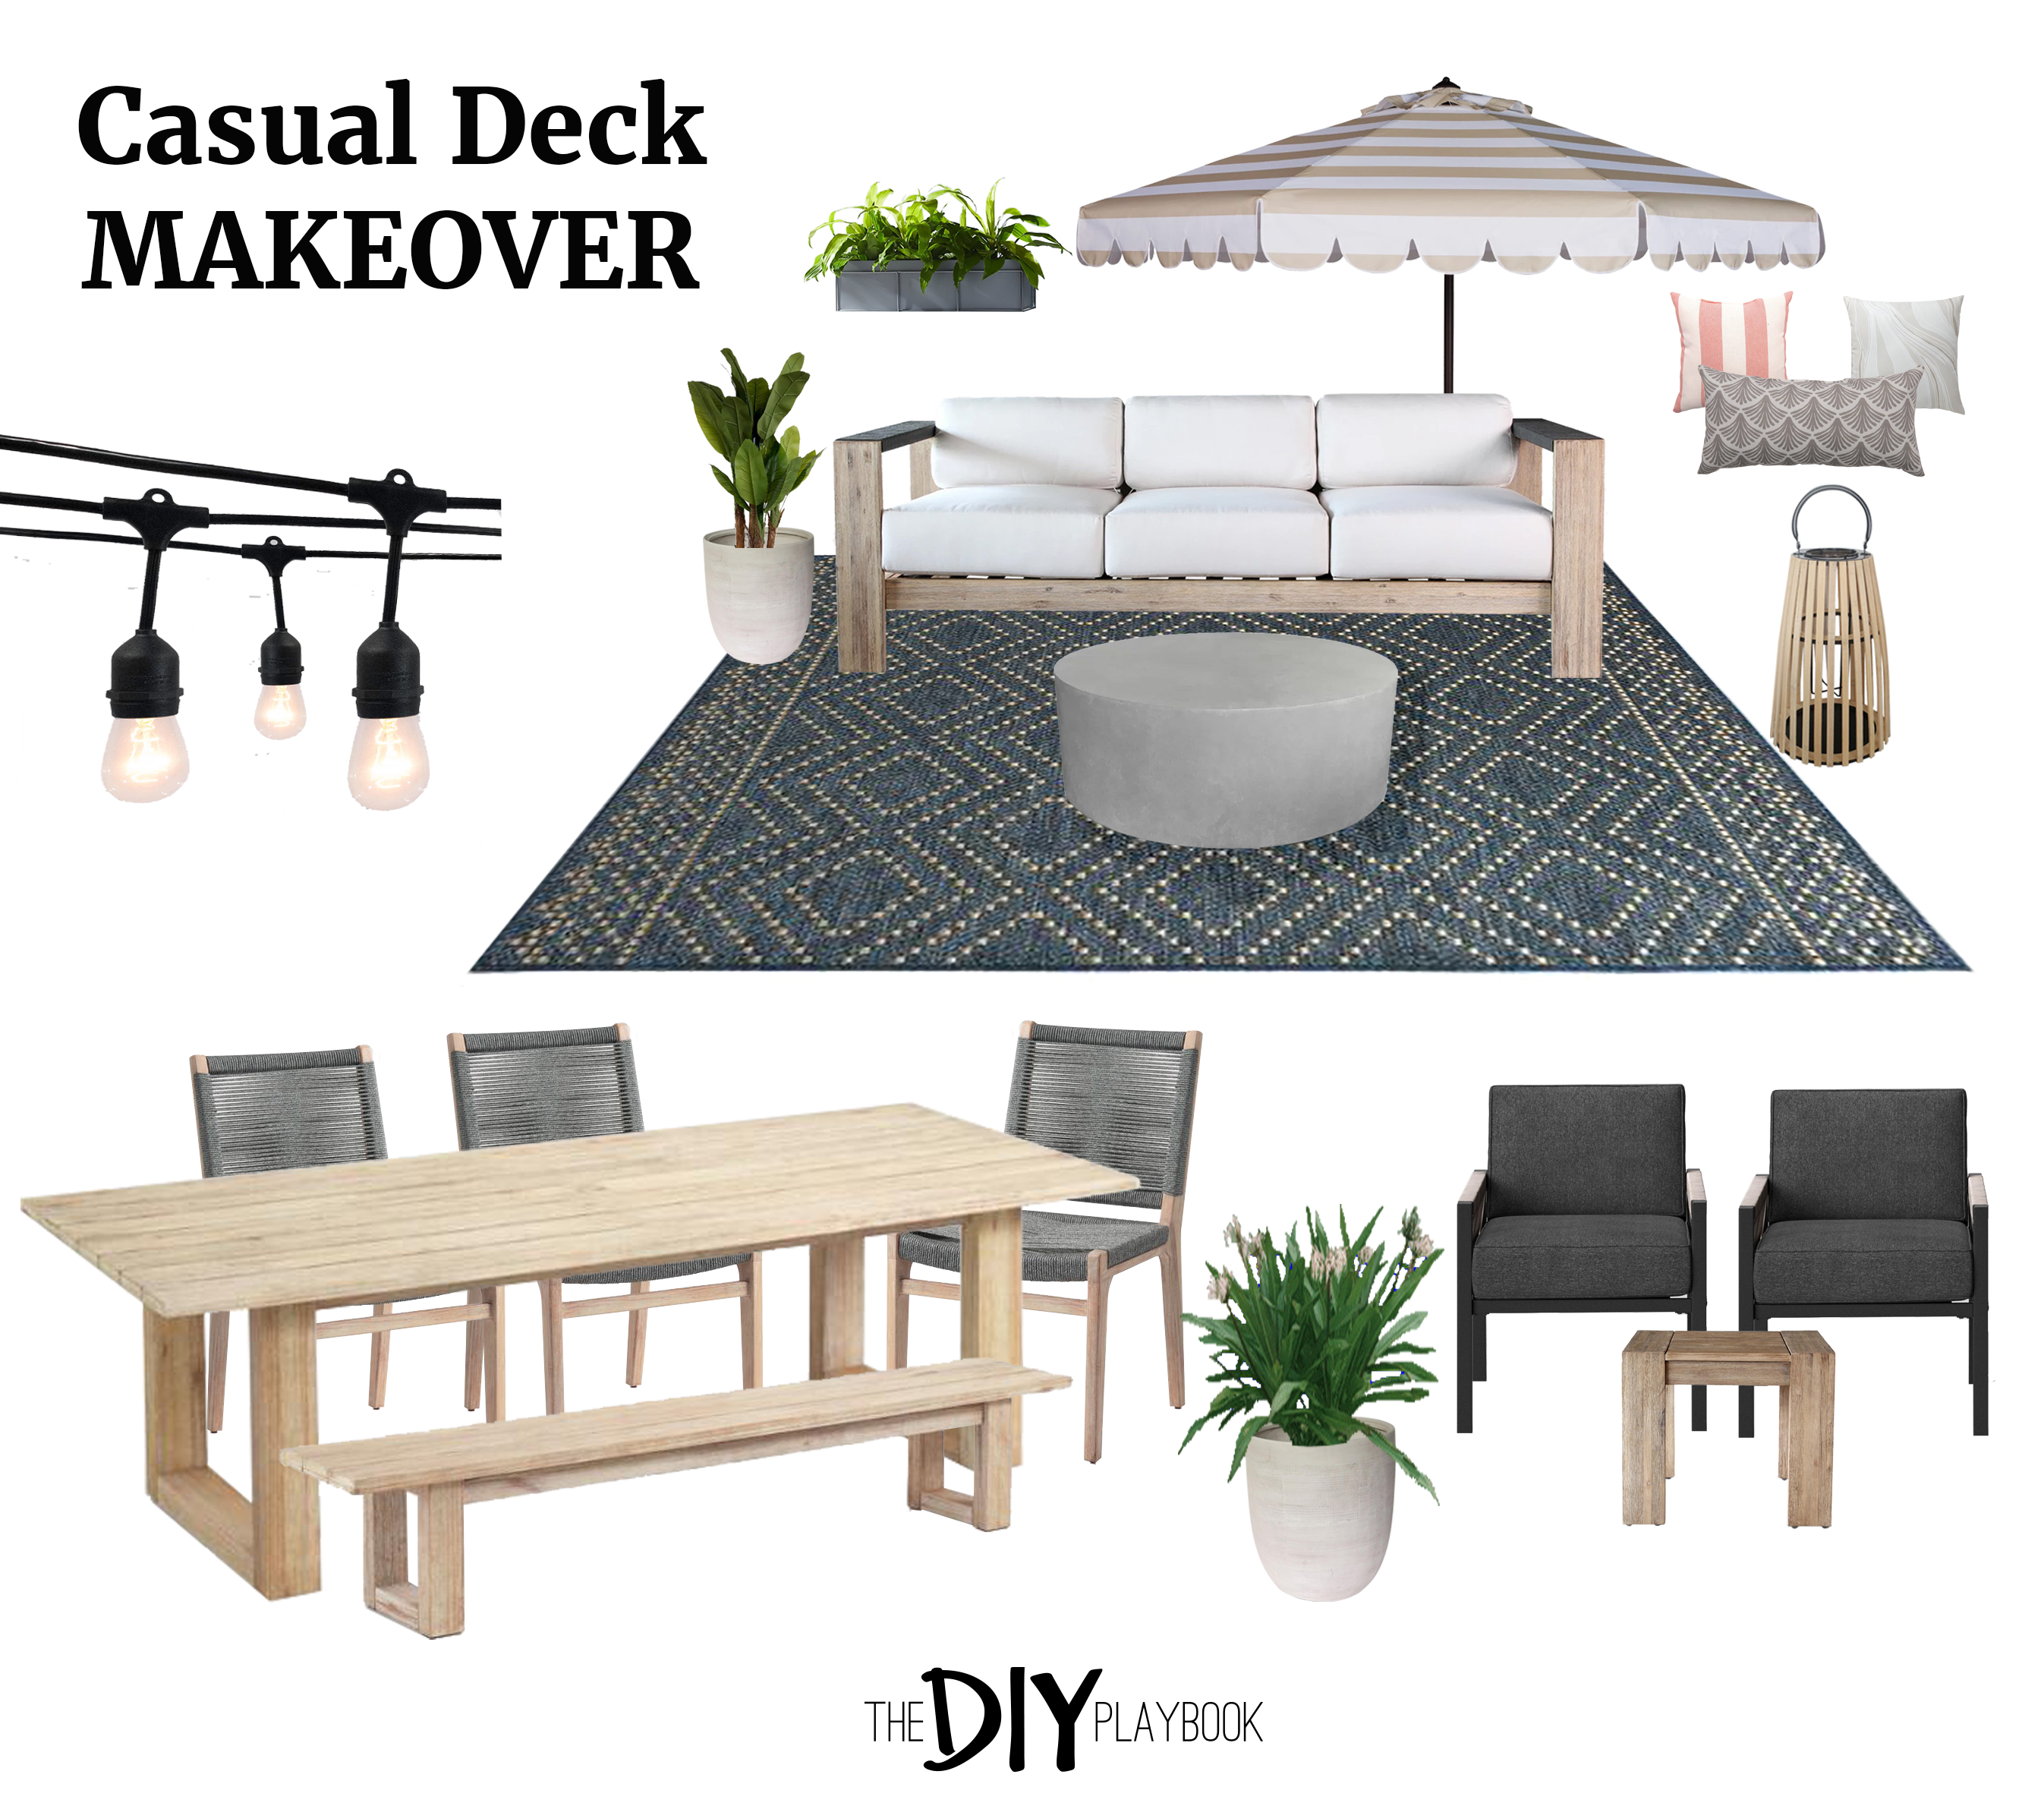 Patio Furniture Layout For A Large Deck Patio Furniture Layout Outdoor Furniture Layout Deck Furniture Layout